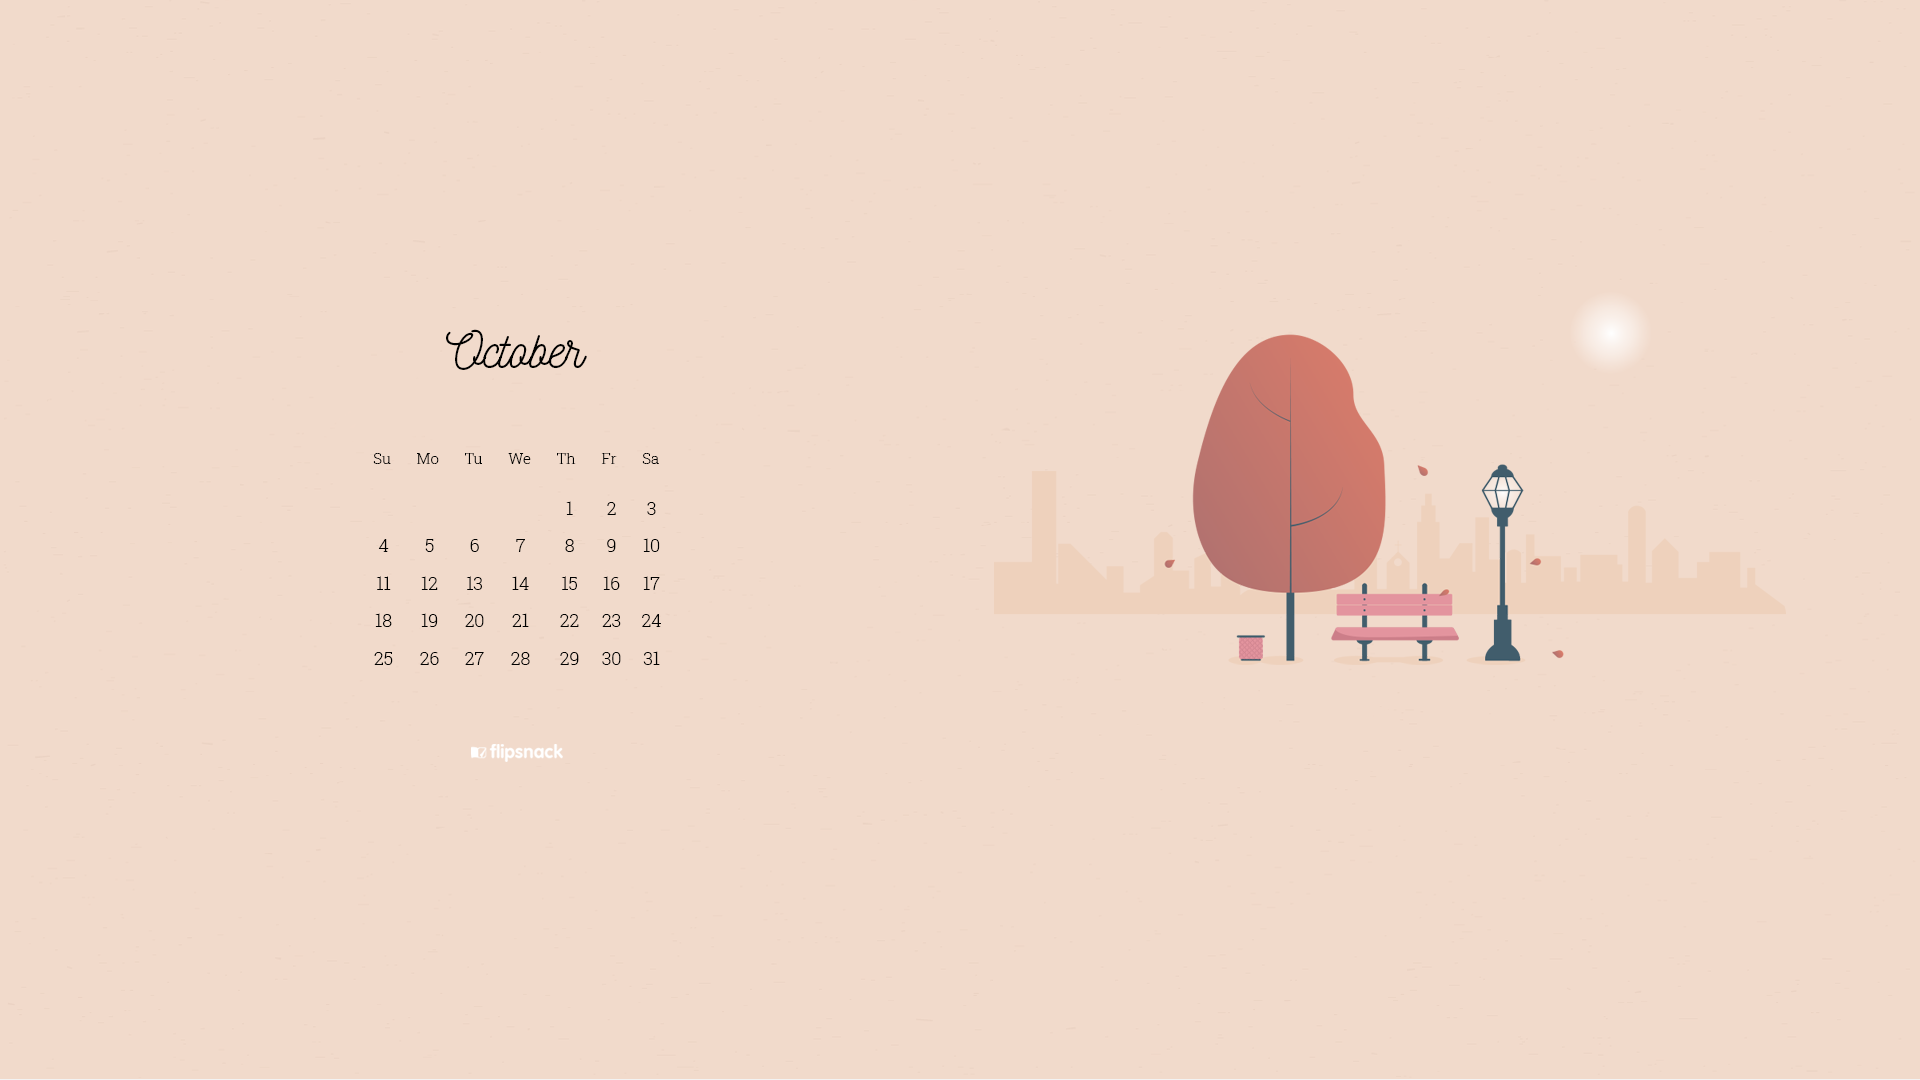 october 2020 wallpaper calendars design